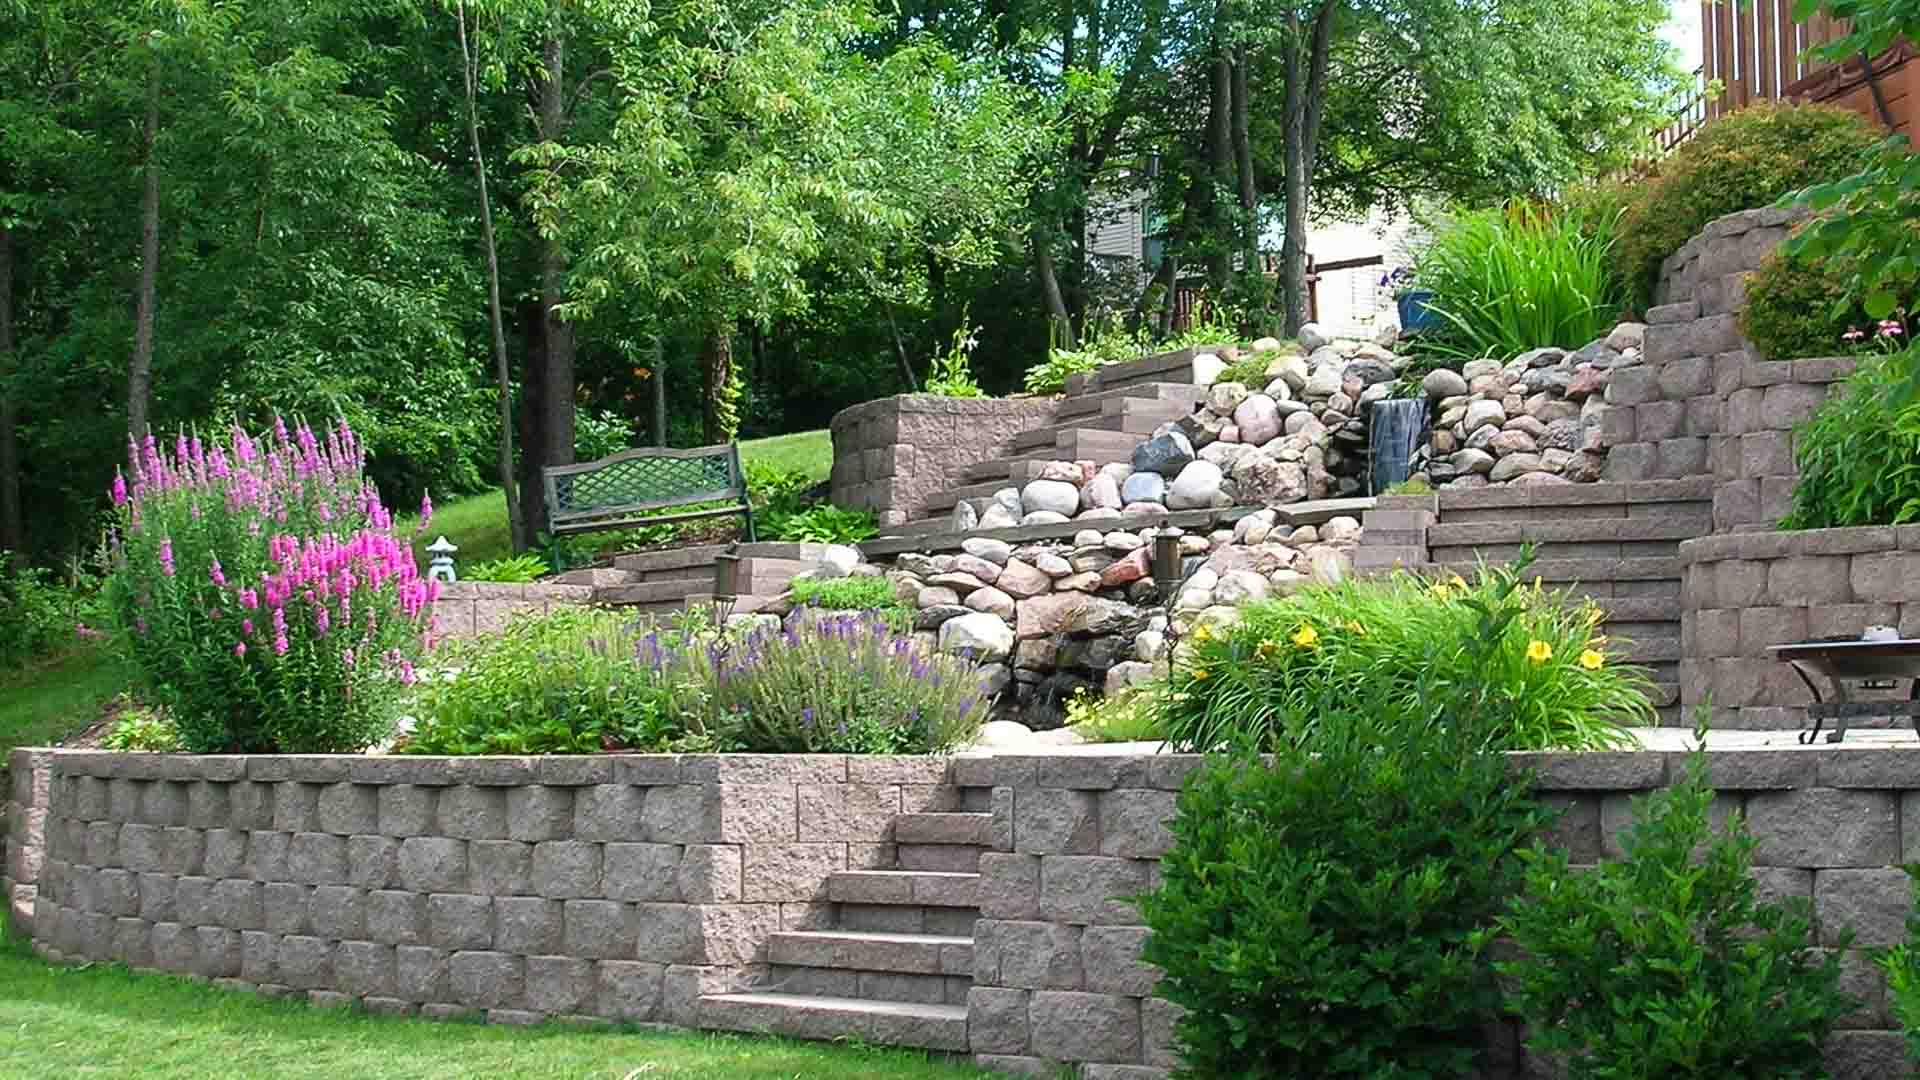 Revitalizing Garden Appearance With The Aid of Landscape Design Rockford IL Assistance